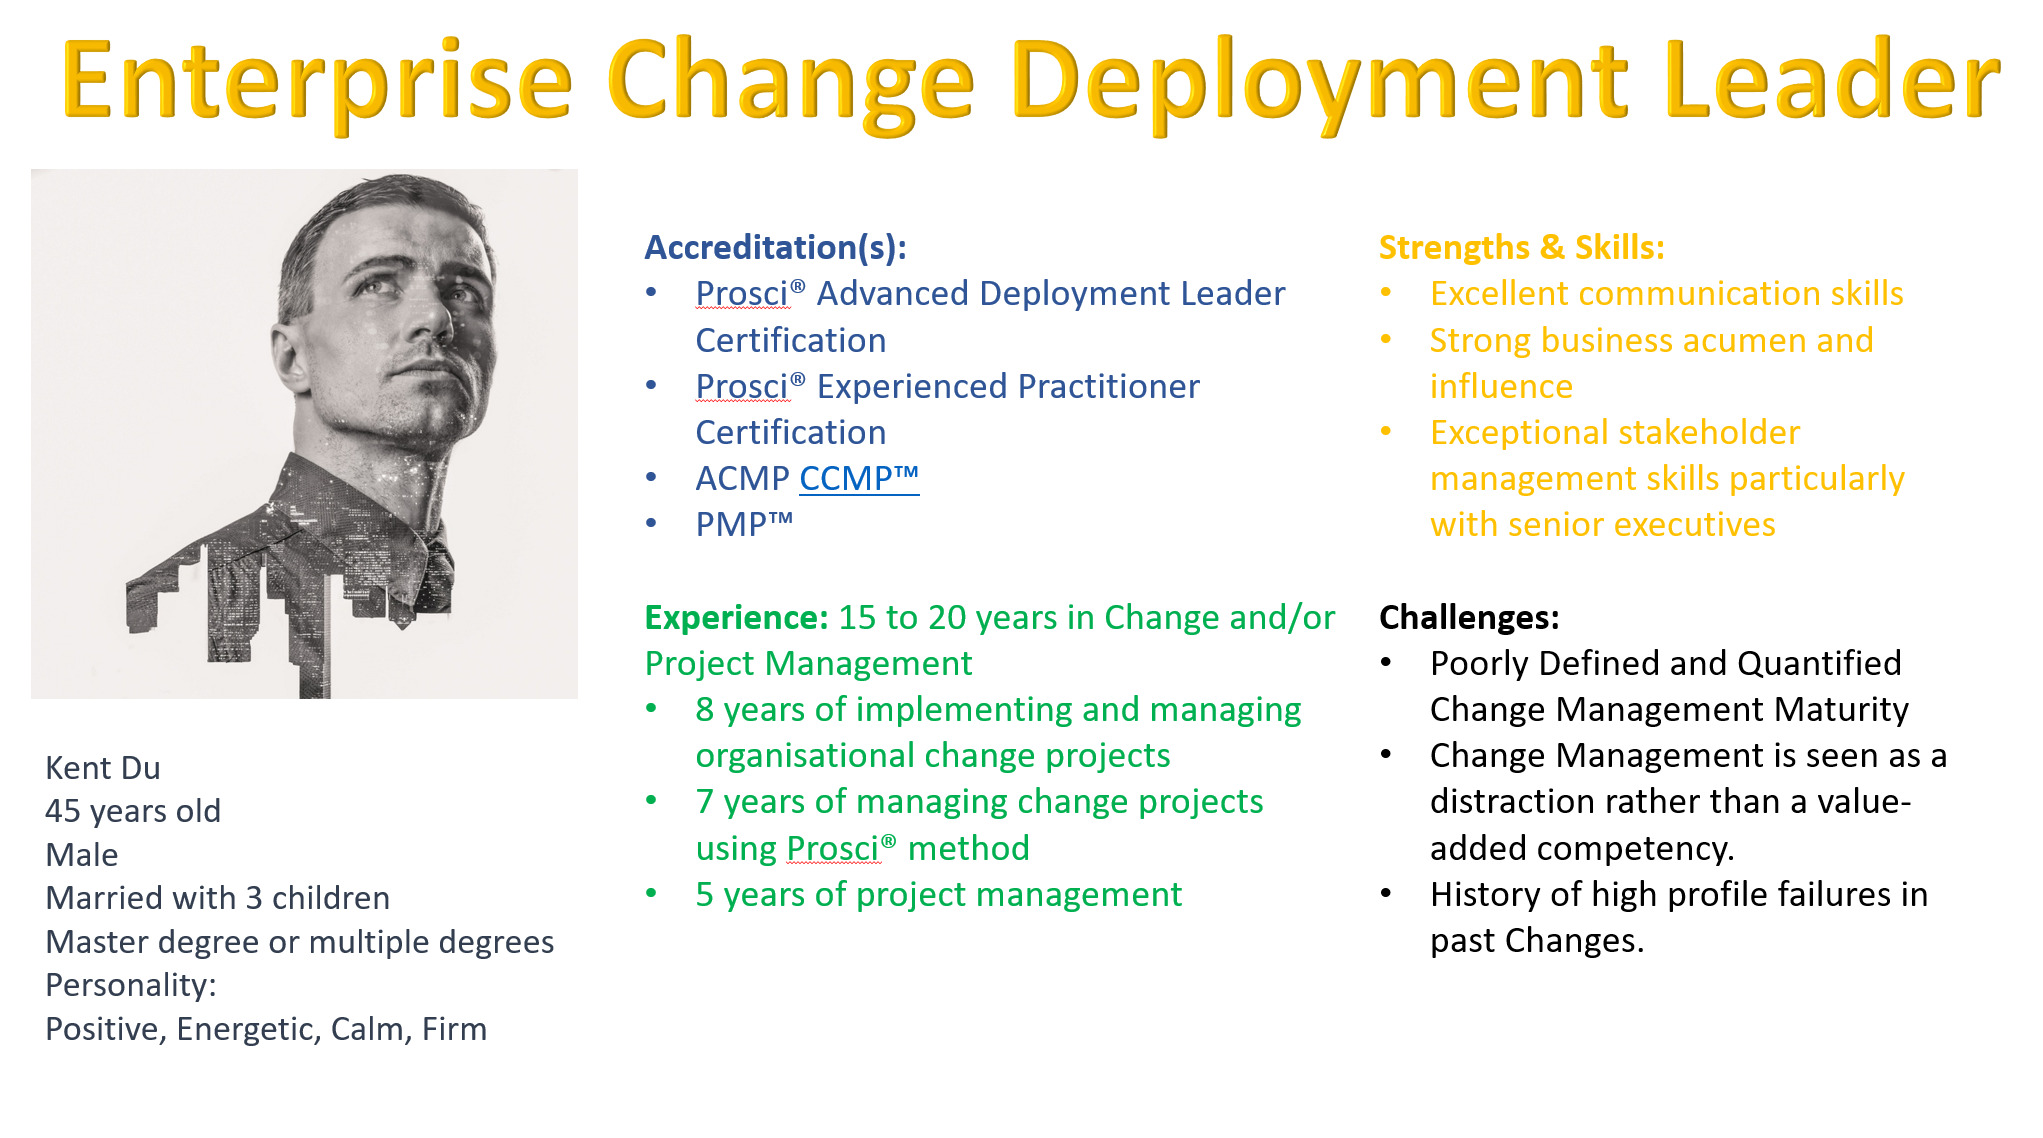 enterprise-change-deployment-leader